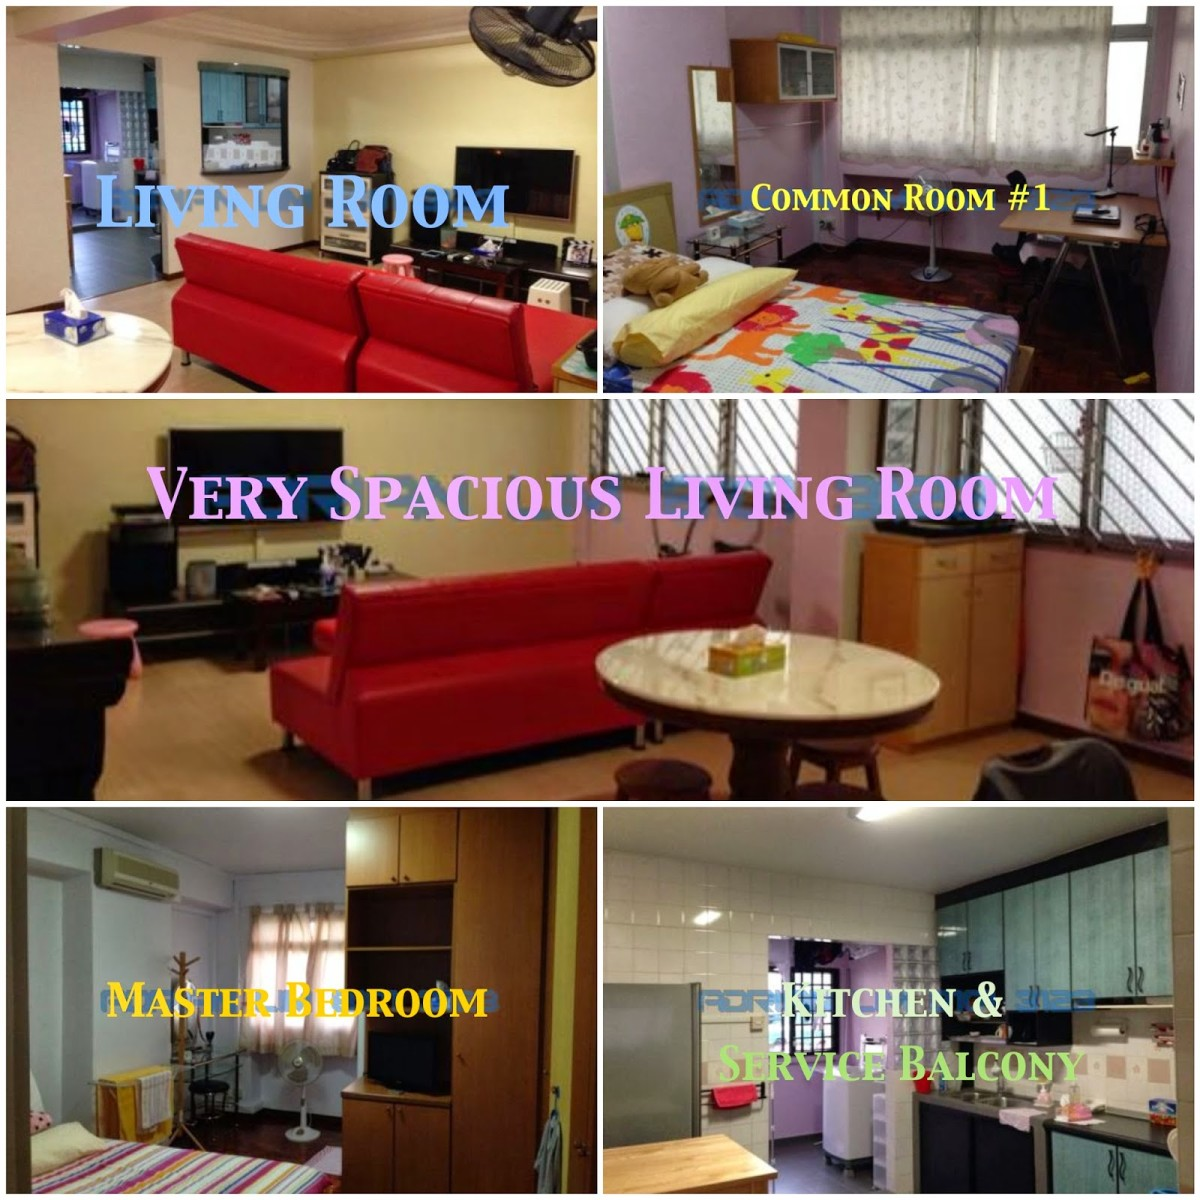 Half Inch Trailer Revisited: Revised 4-Room HDB Renovation Ideas